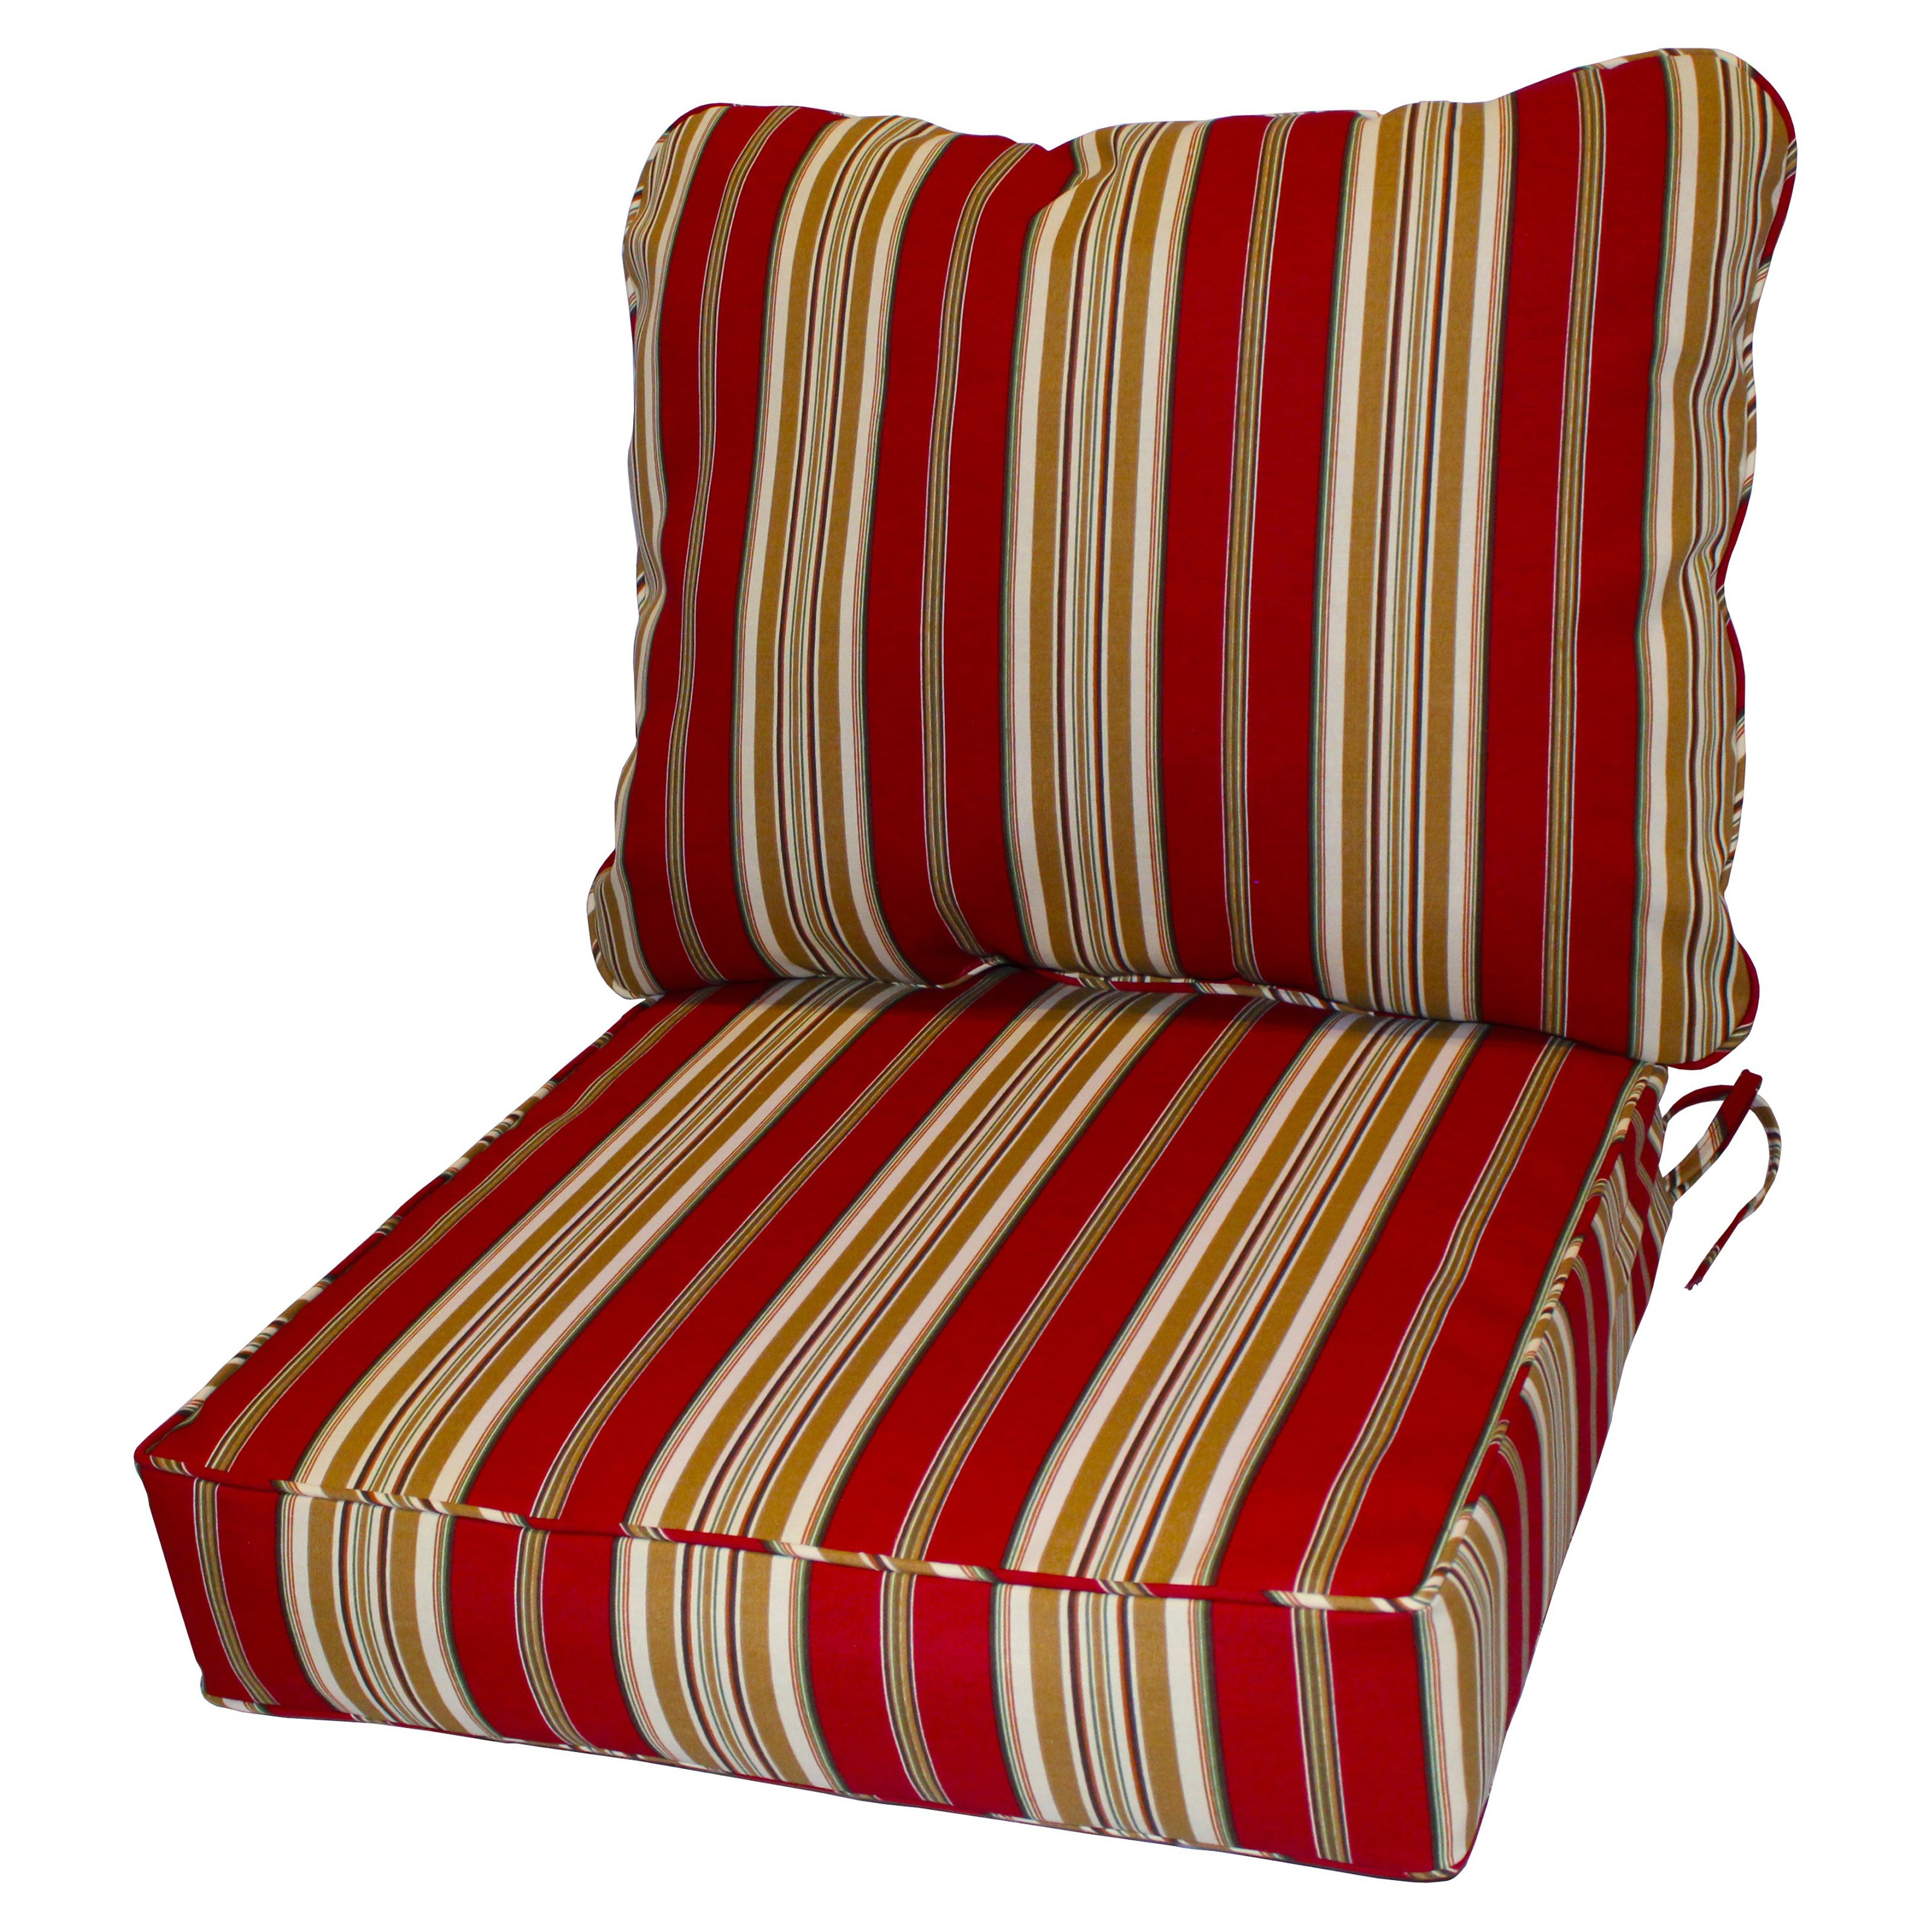 Best ideas about Walmart Patio Cushions Clearance . Save or Pin Furniture Sunbrella Outdoor Pillows Patio Cushions Walmart Now.